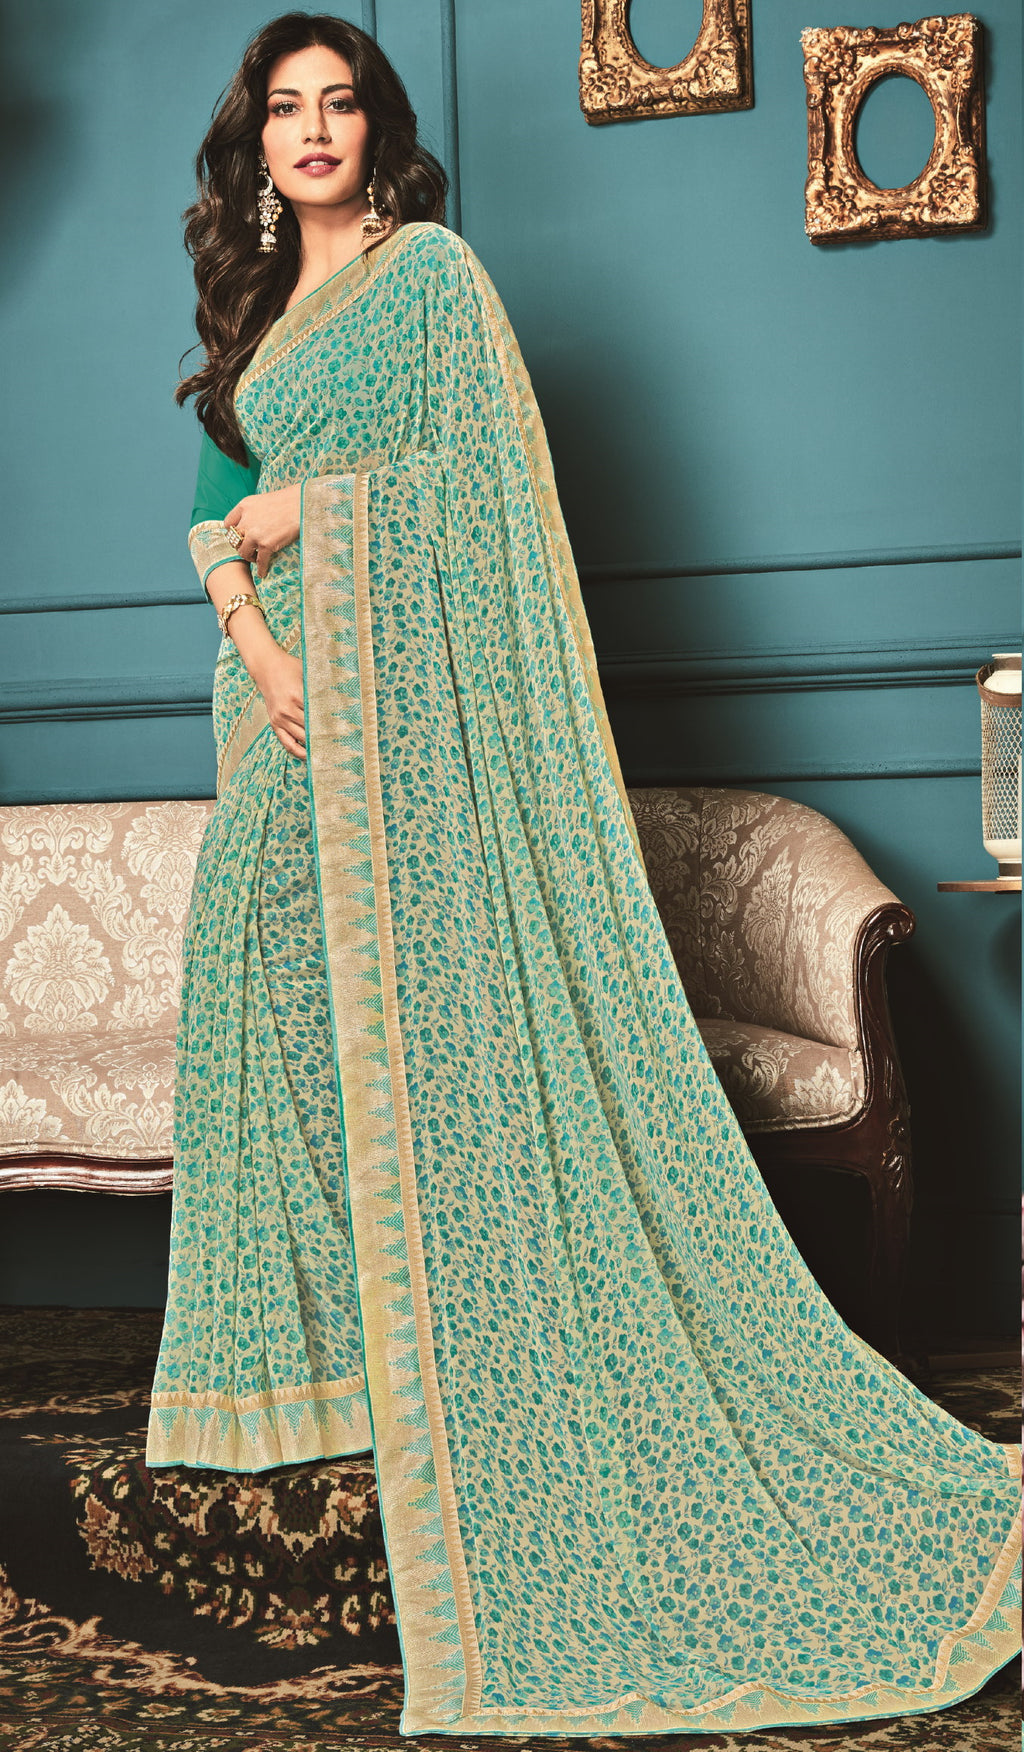 Cream & Sea Green Color Georgette Trendy Office Wear Sarees NYF-6327